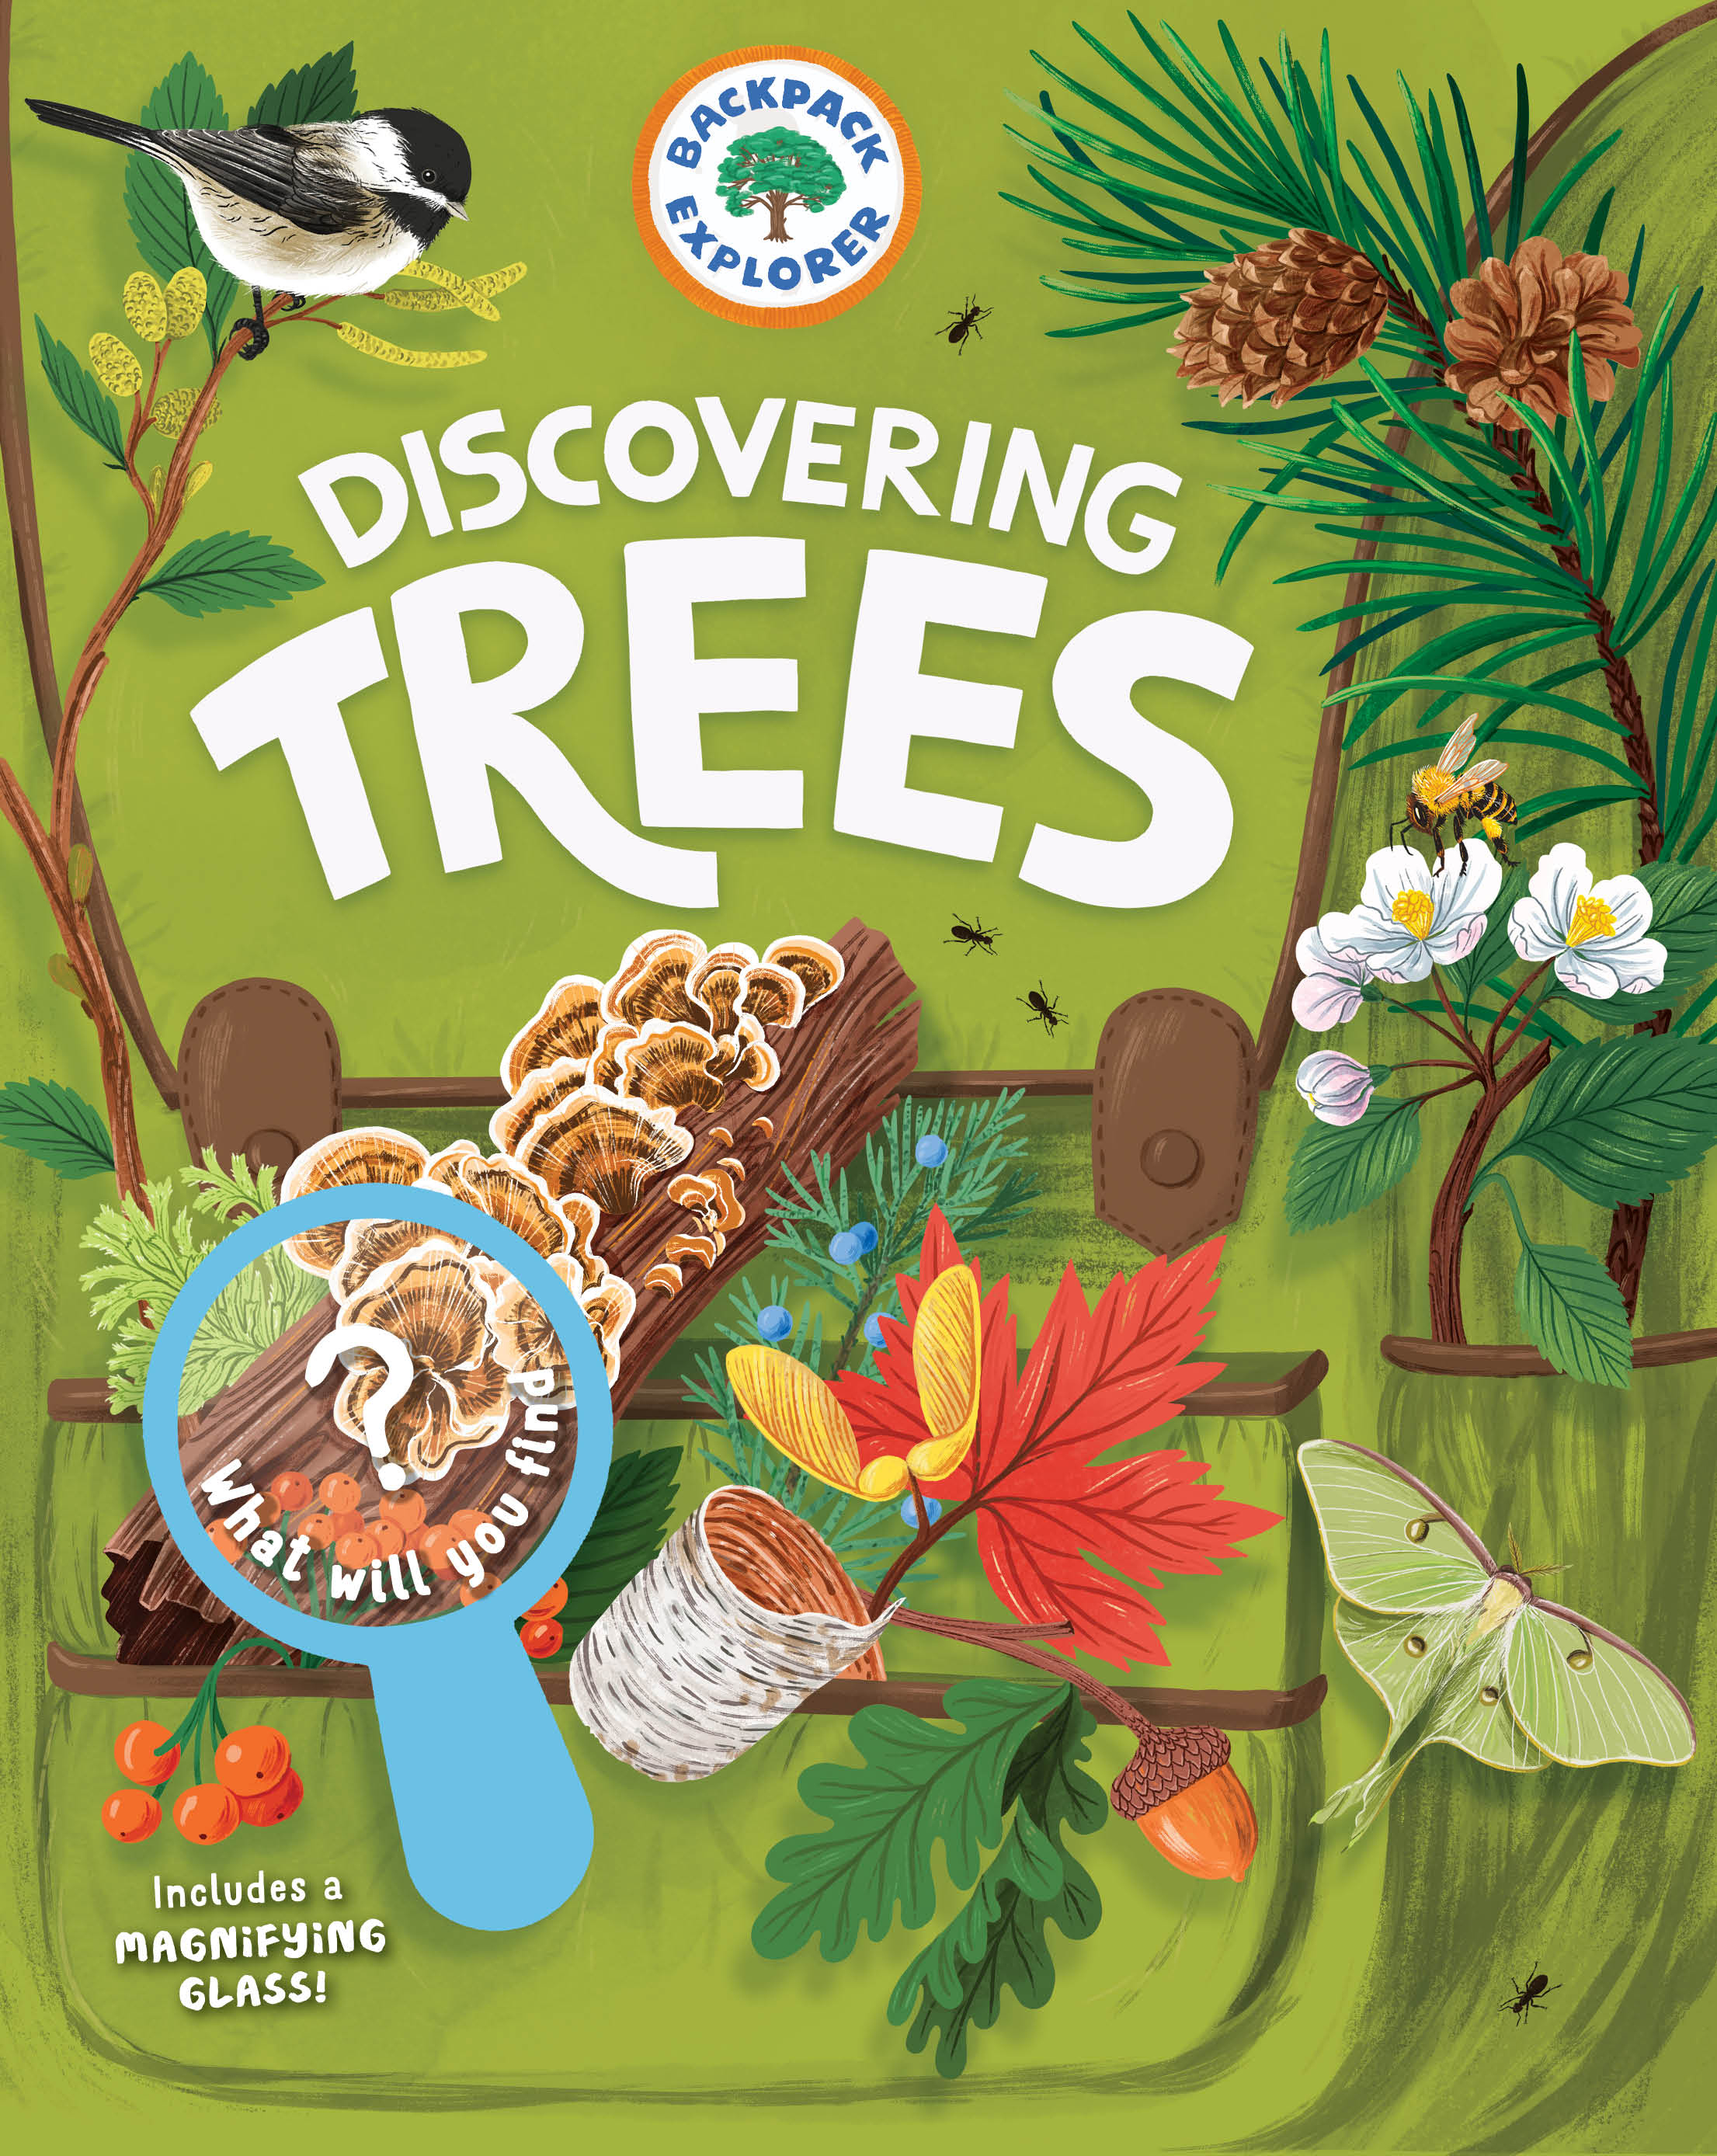 Backpack Explorer: Discovering Trees What Will You Find? - Editors of Storey Publishing